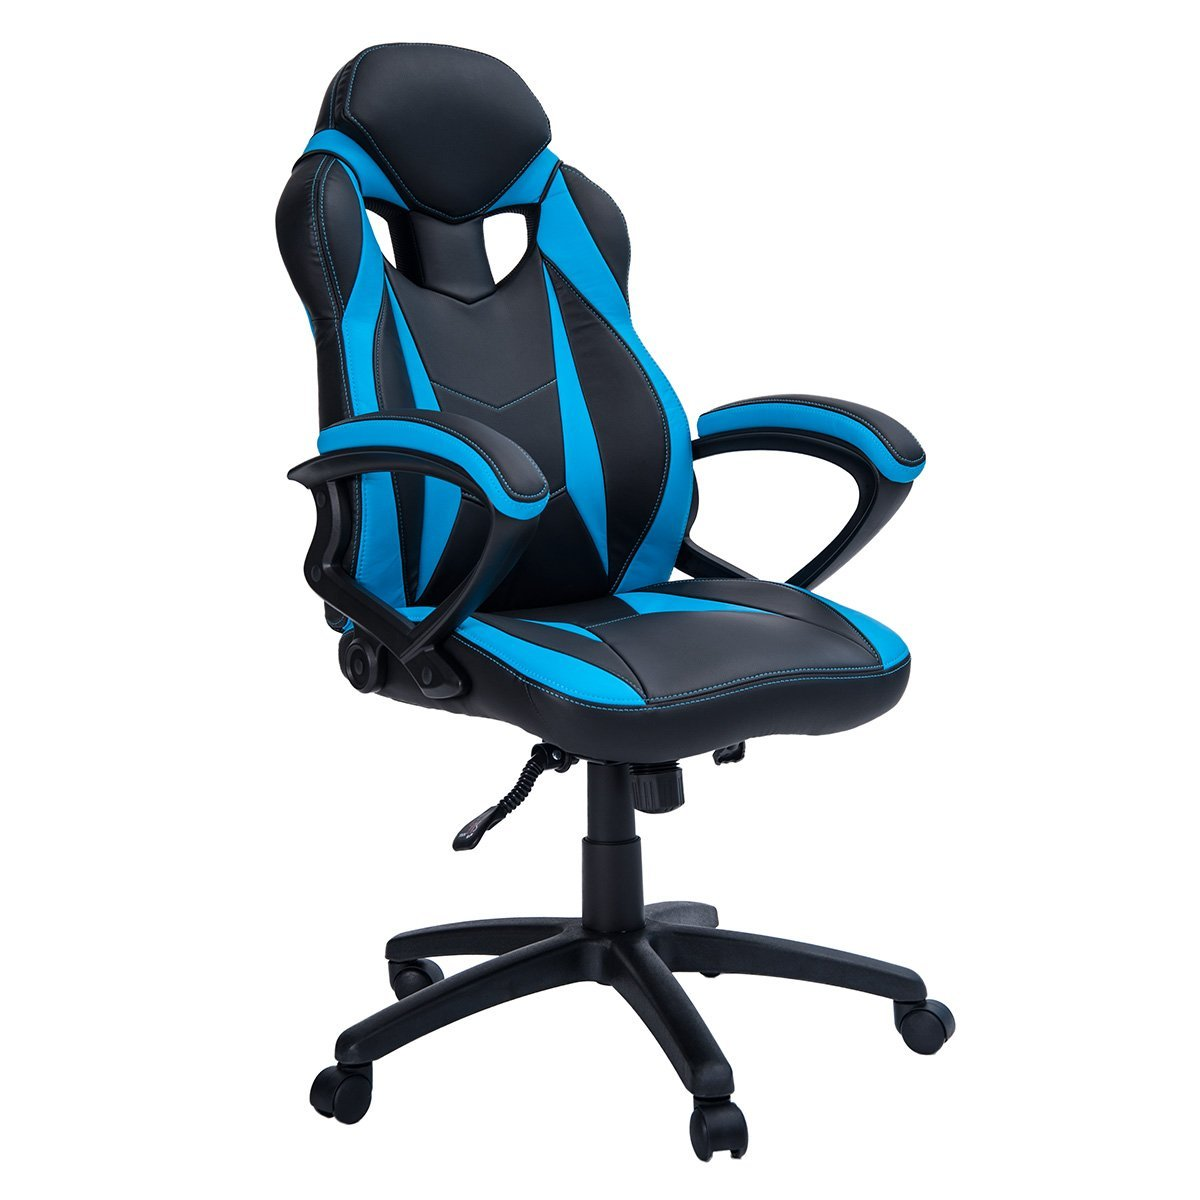 Good office chairs ergonomic - The Reason Why Ergonomic Chairs Are So Popular Among The Students Businessmen And Office Workers Is The Great Comfort That It Provides